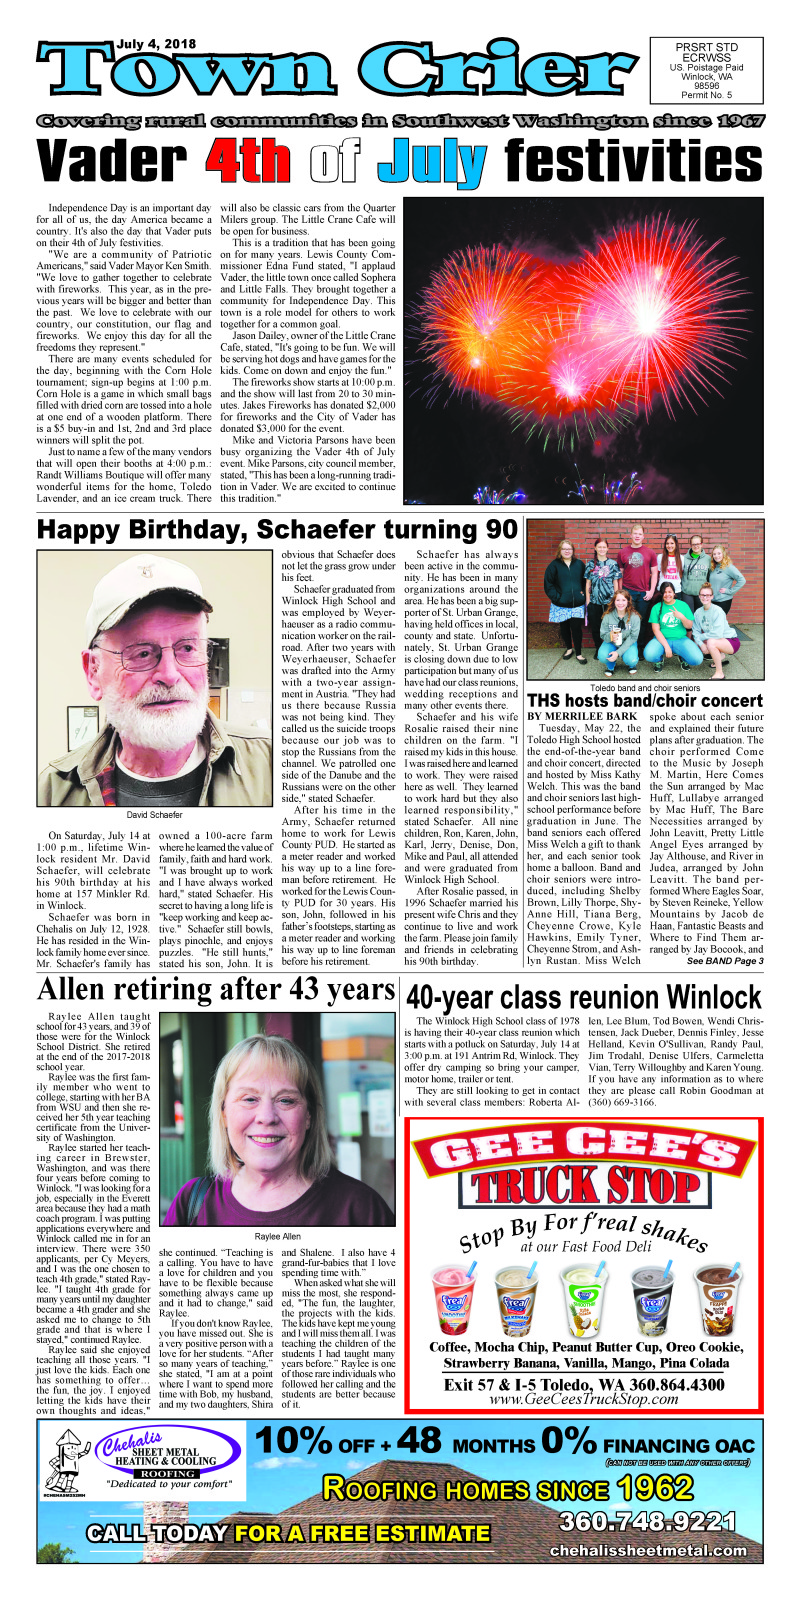 July 4, 2018 Town Crier